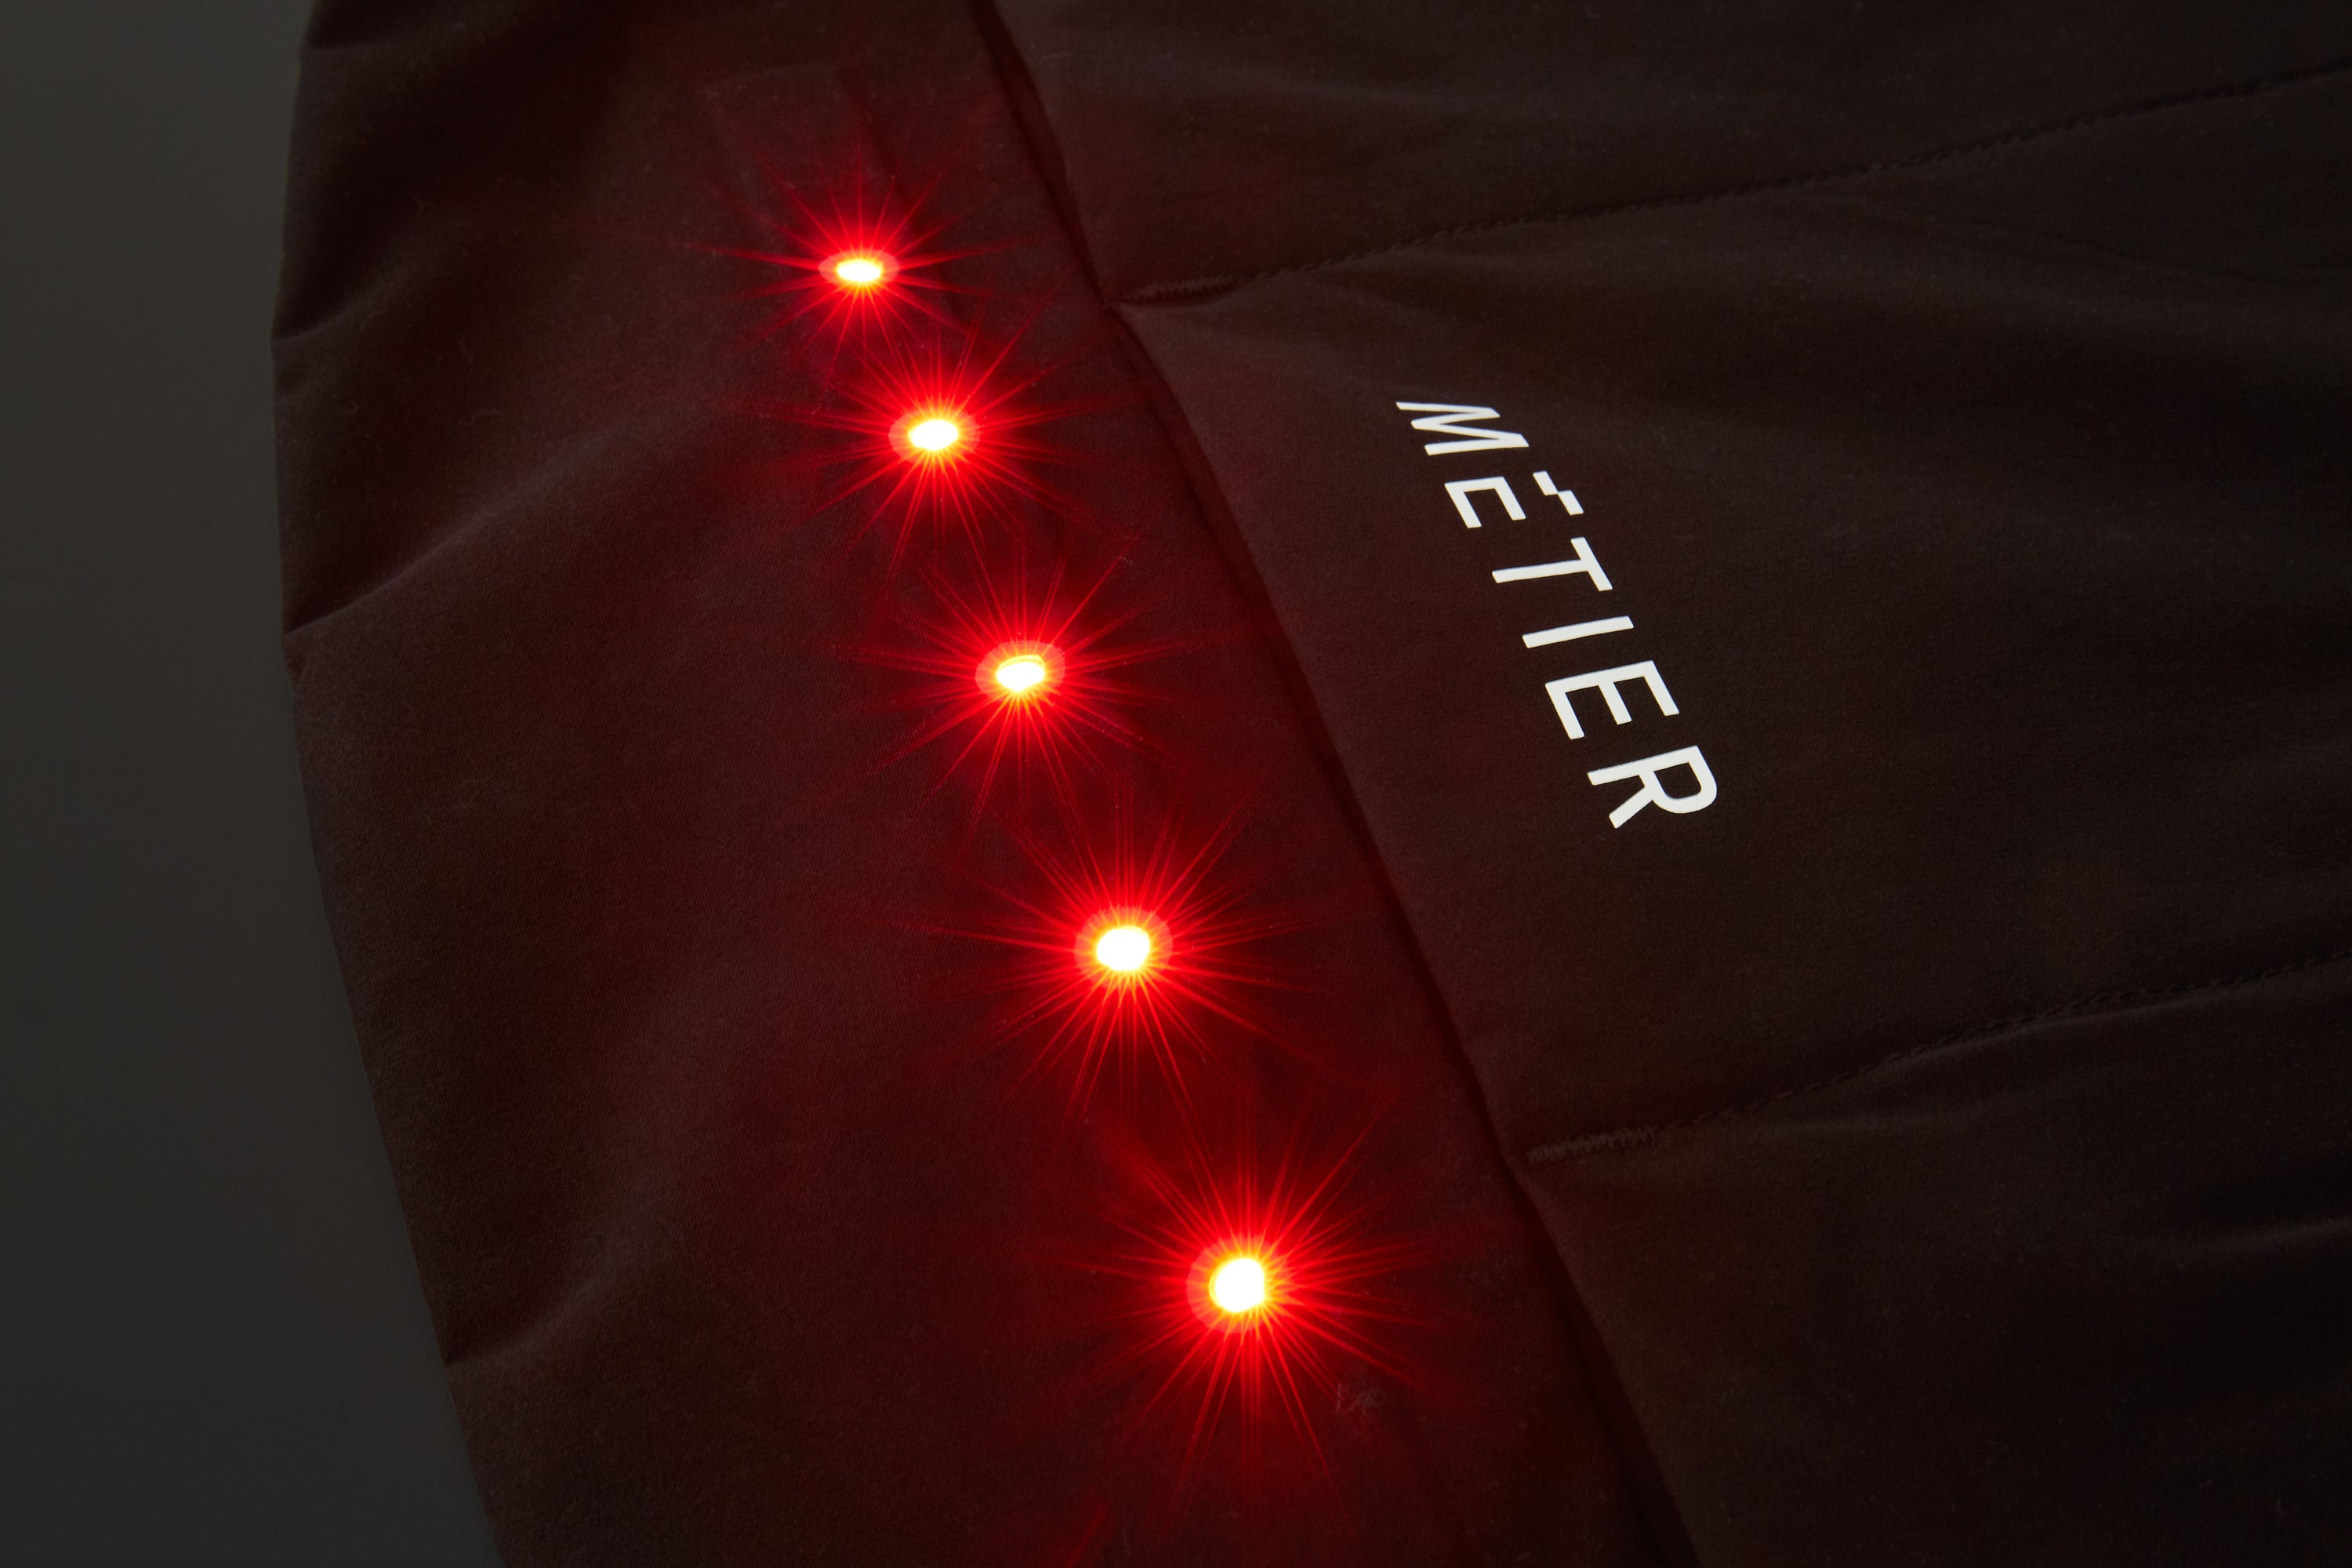 Our BrightRide lighting system is seamlessly bonded into the front and rear of the garments. UHI (Ultra High Intensity) and UHB (Ultra High Brightness) LEDs deliver fantastic personal visibility, allowing you to ride all day and through the night. Bonding and precision laser cutting techniques give the garments a sleek, modern aesthetic while reducing overall weight.